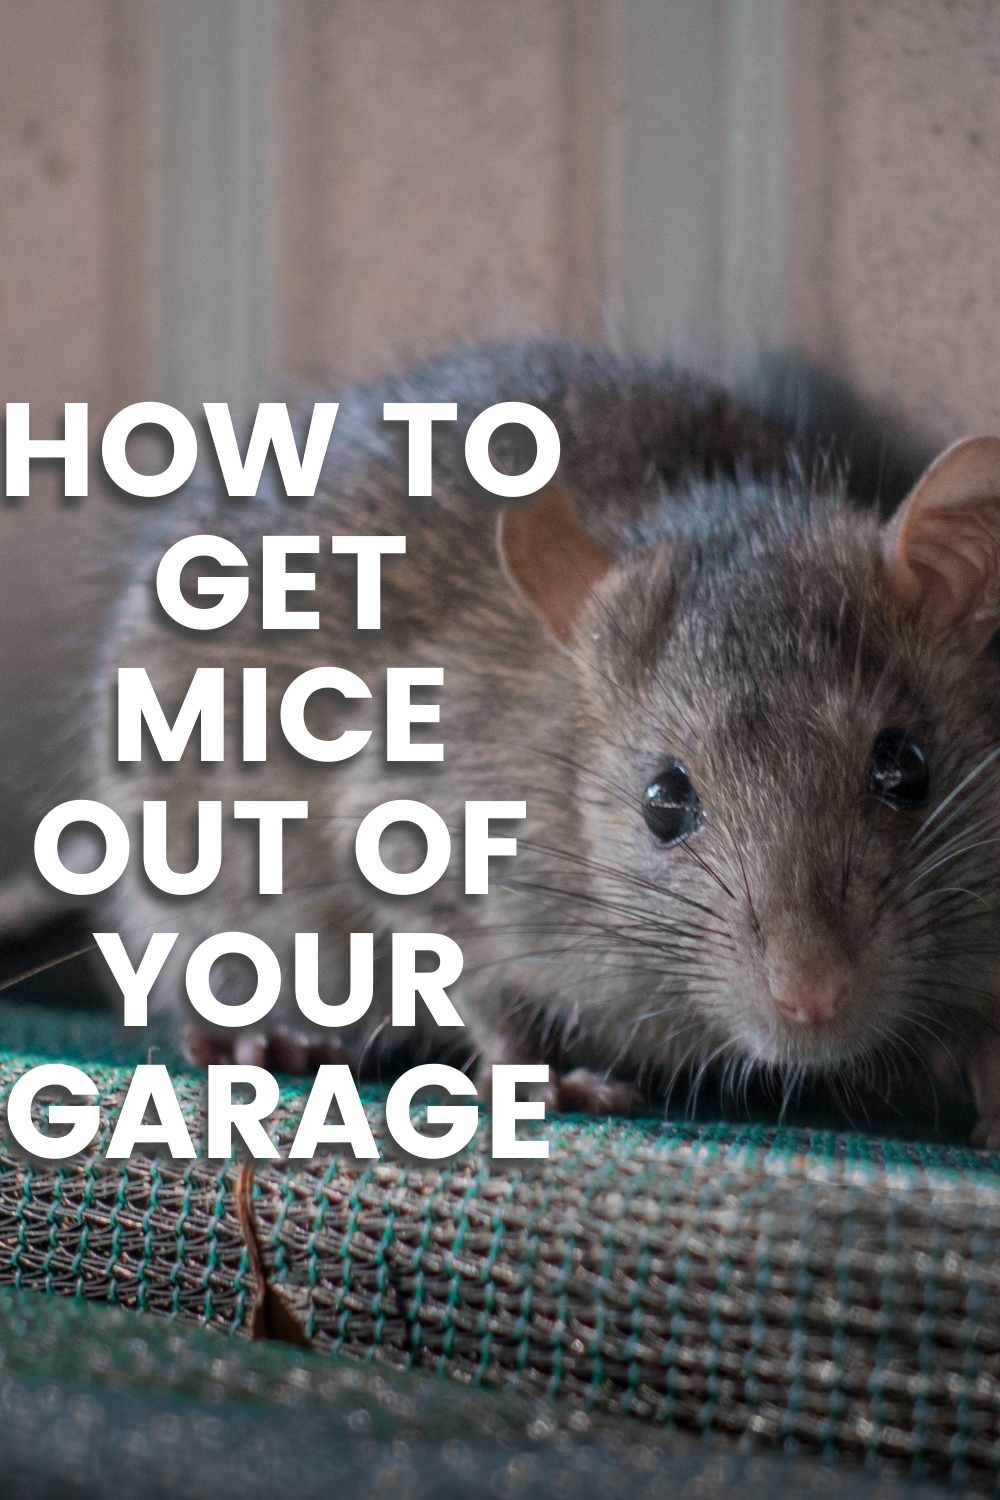 How to Get Mice Out of Your Garage